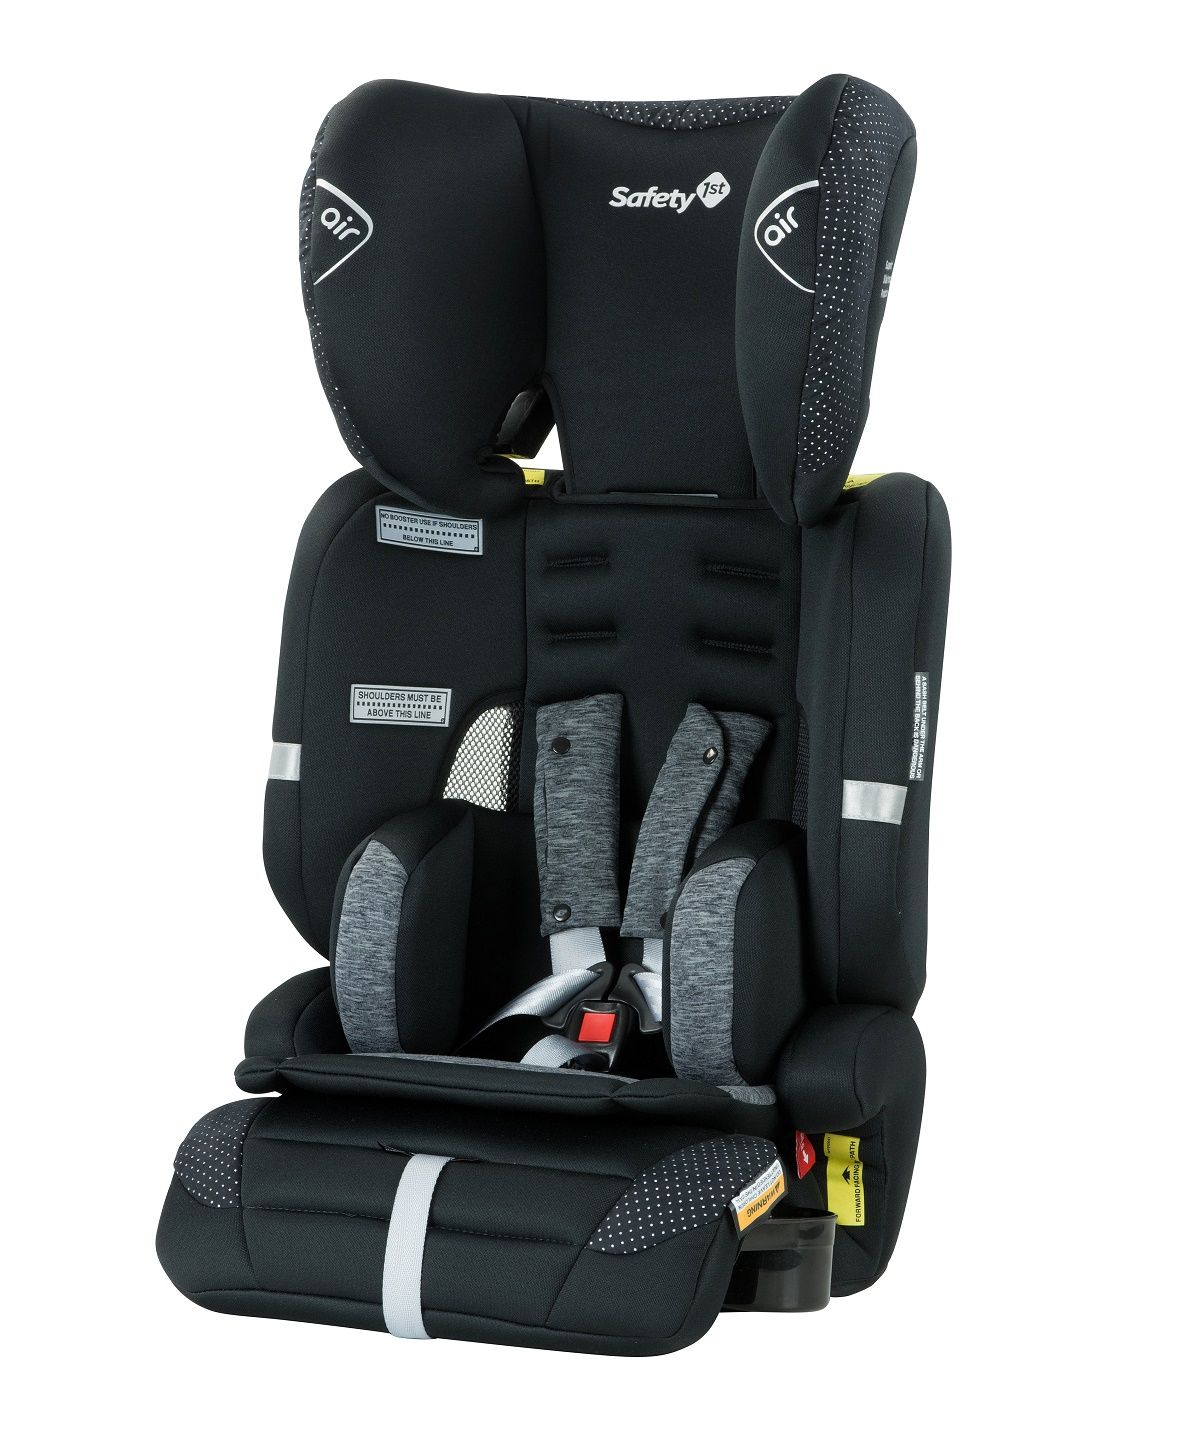 Safety 1st Prime Car Seat Best Seats Baby Toddler Child